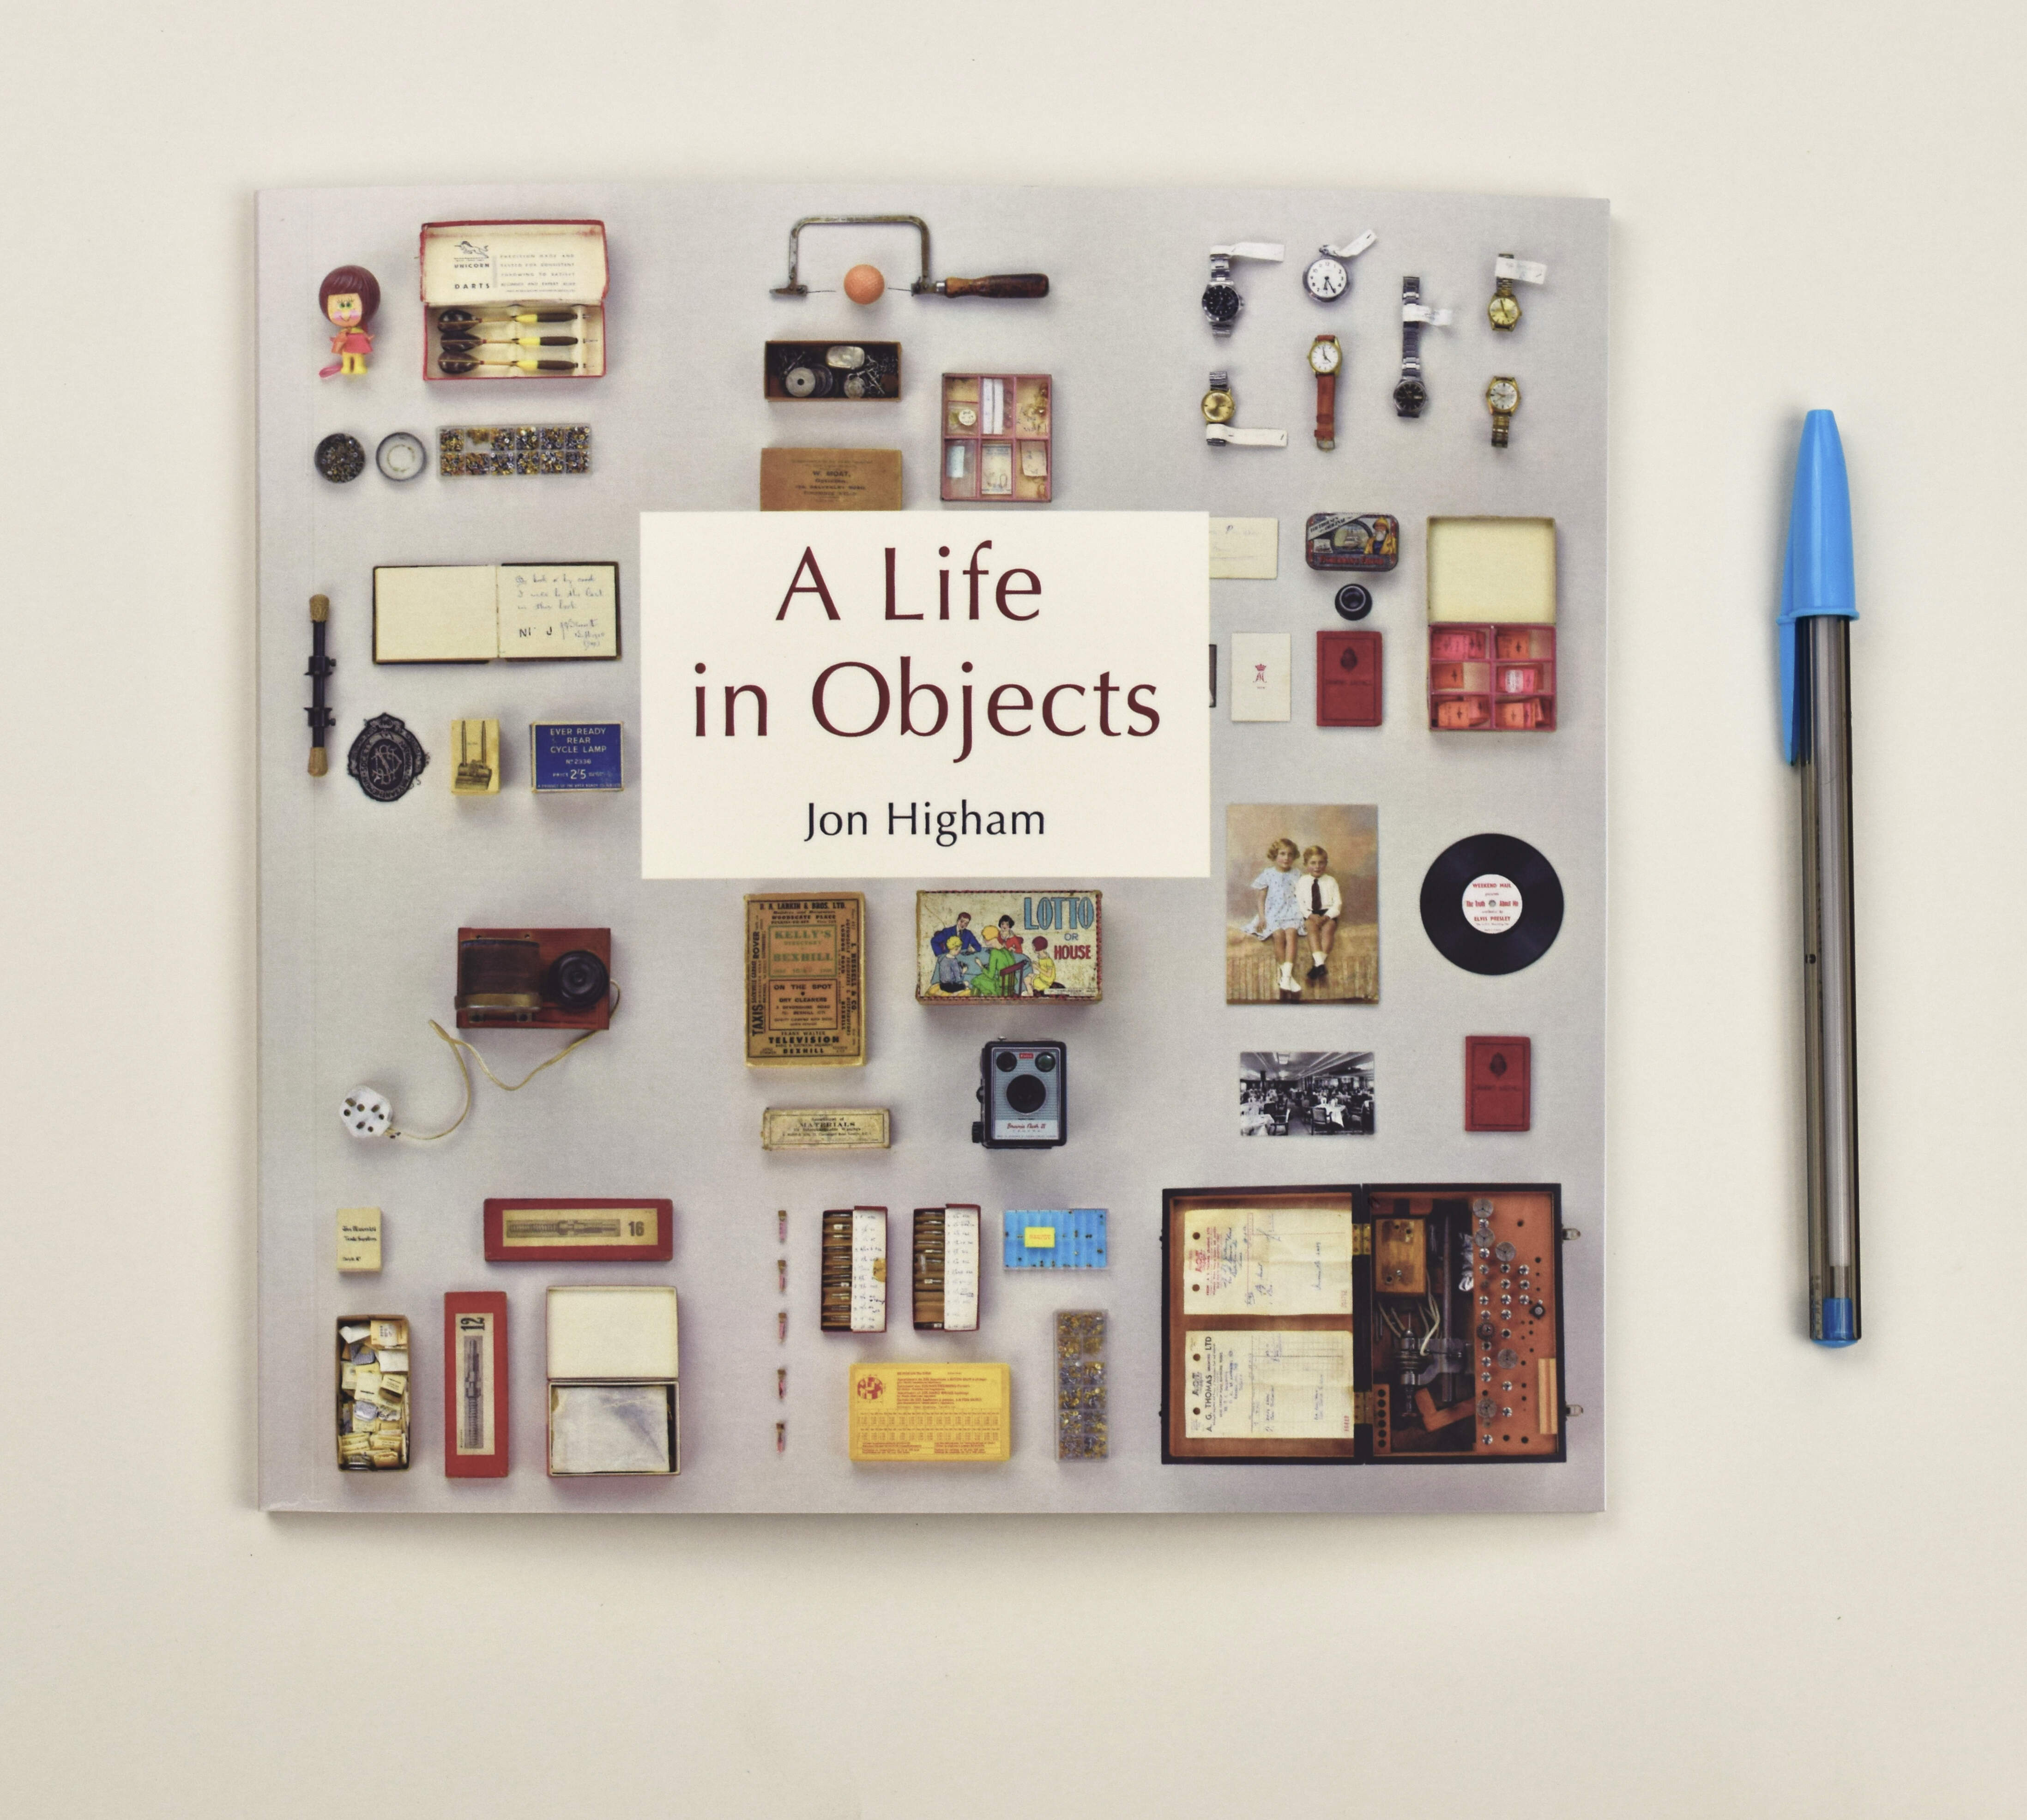 A Life in Objects 21cm x 21cm Edition (UK Edition) *Now in Stock*